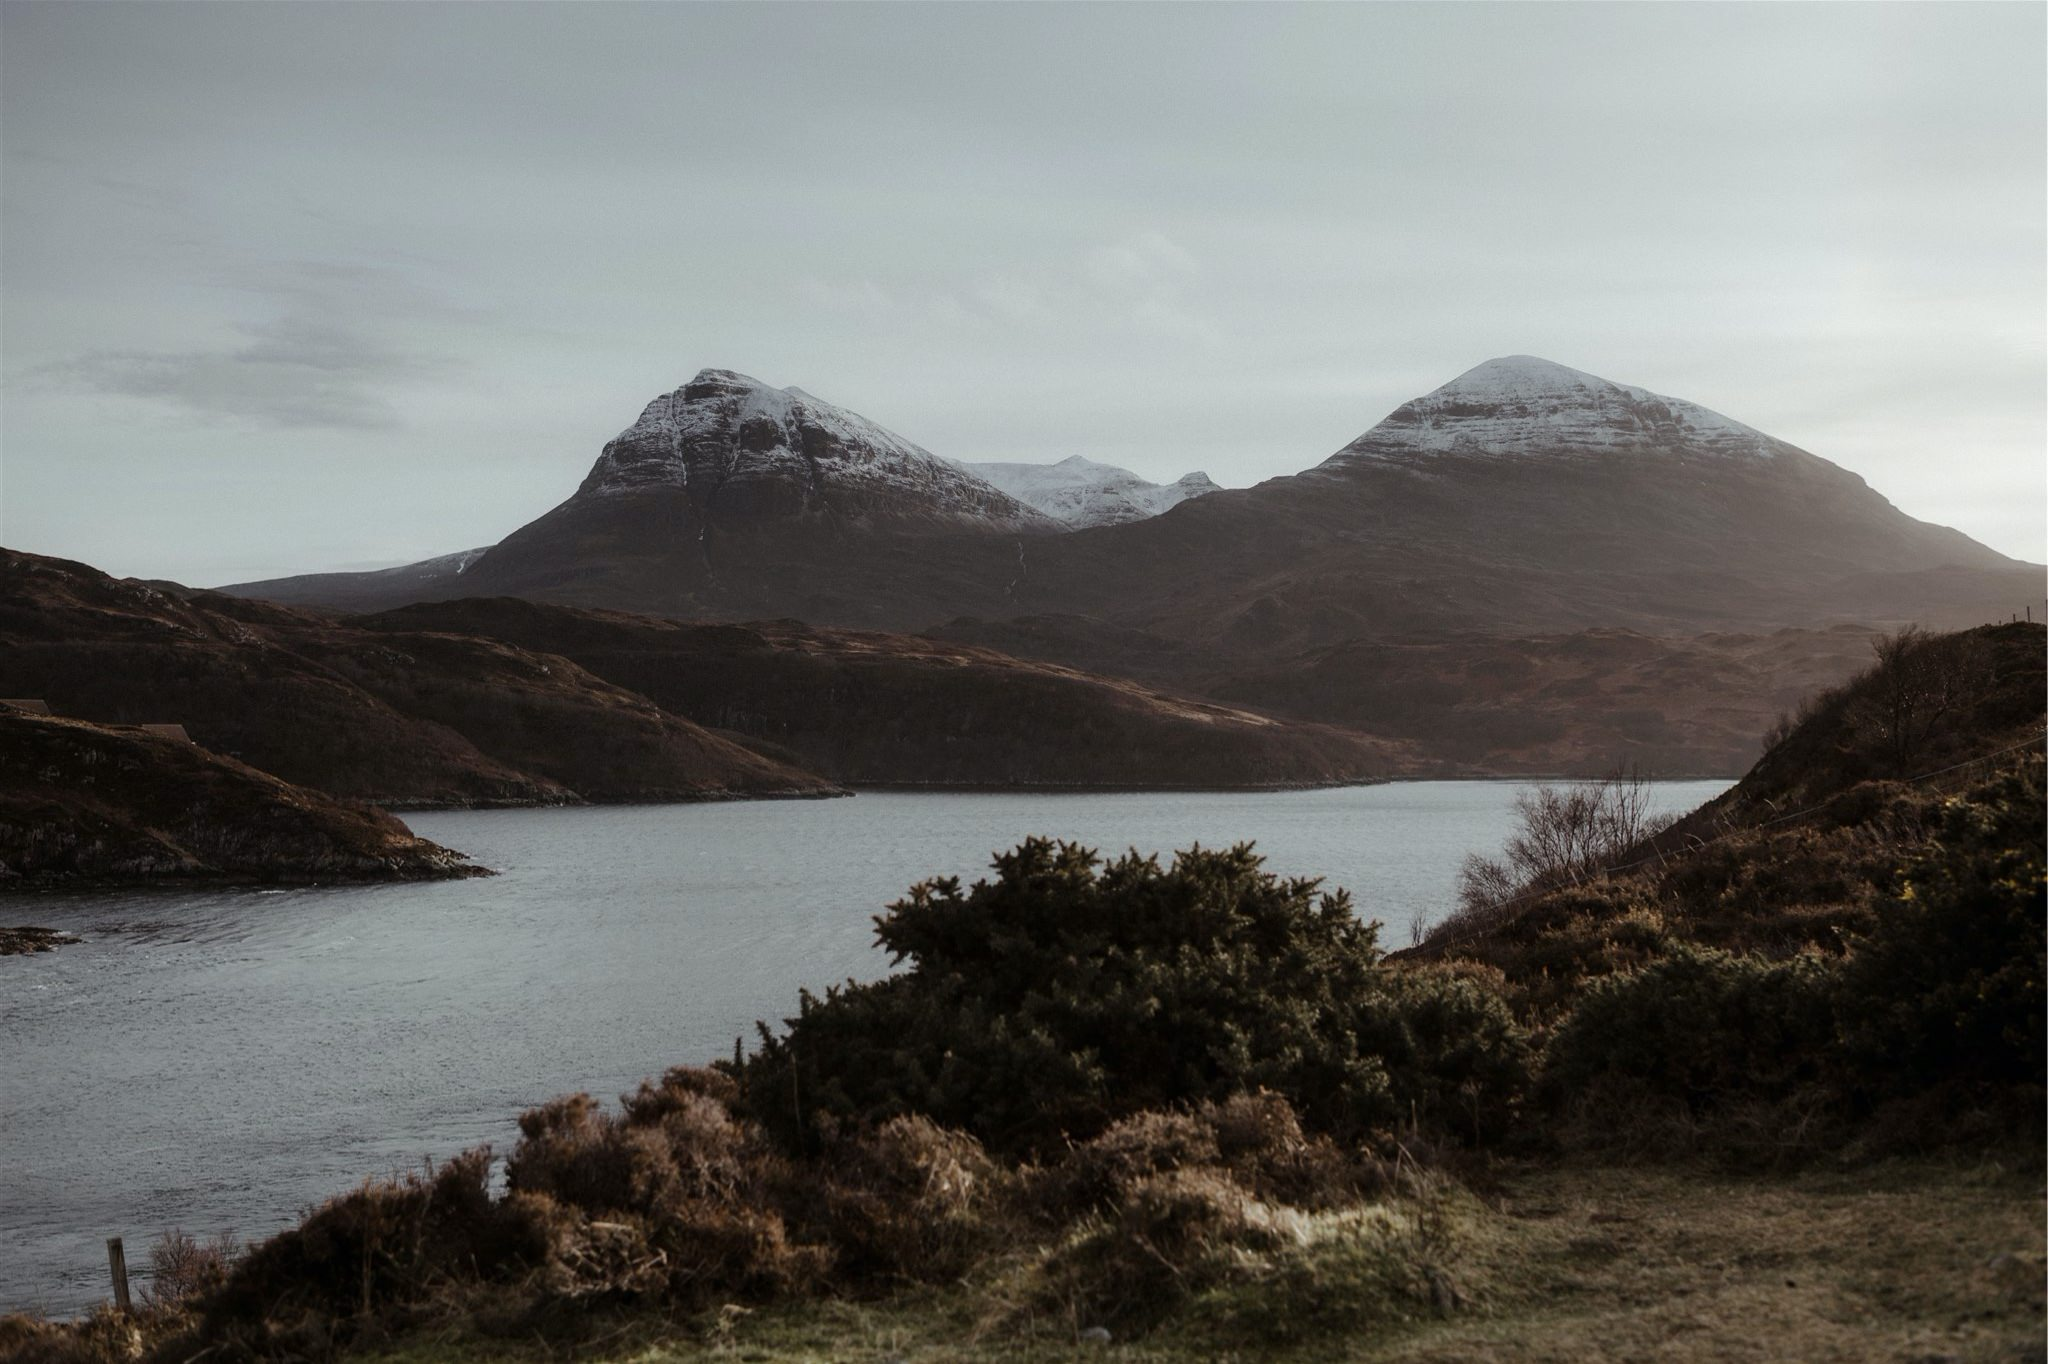 Landscape shot of loch and mountains in Assynt, Scotland